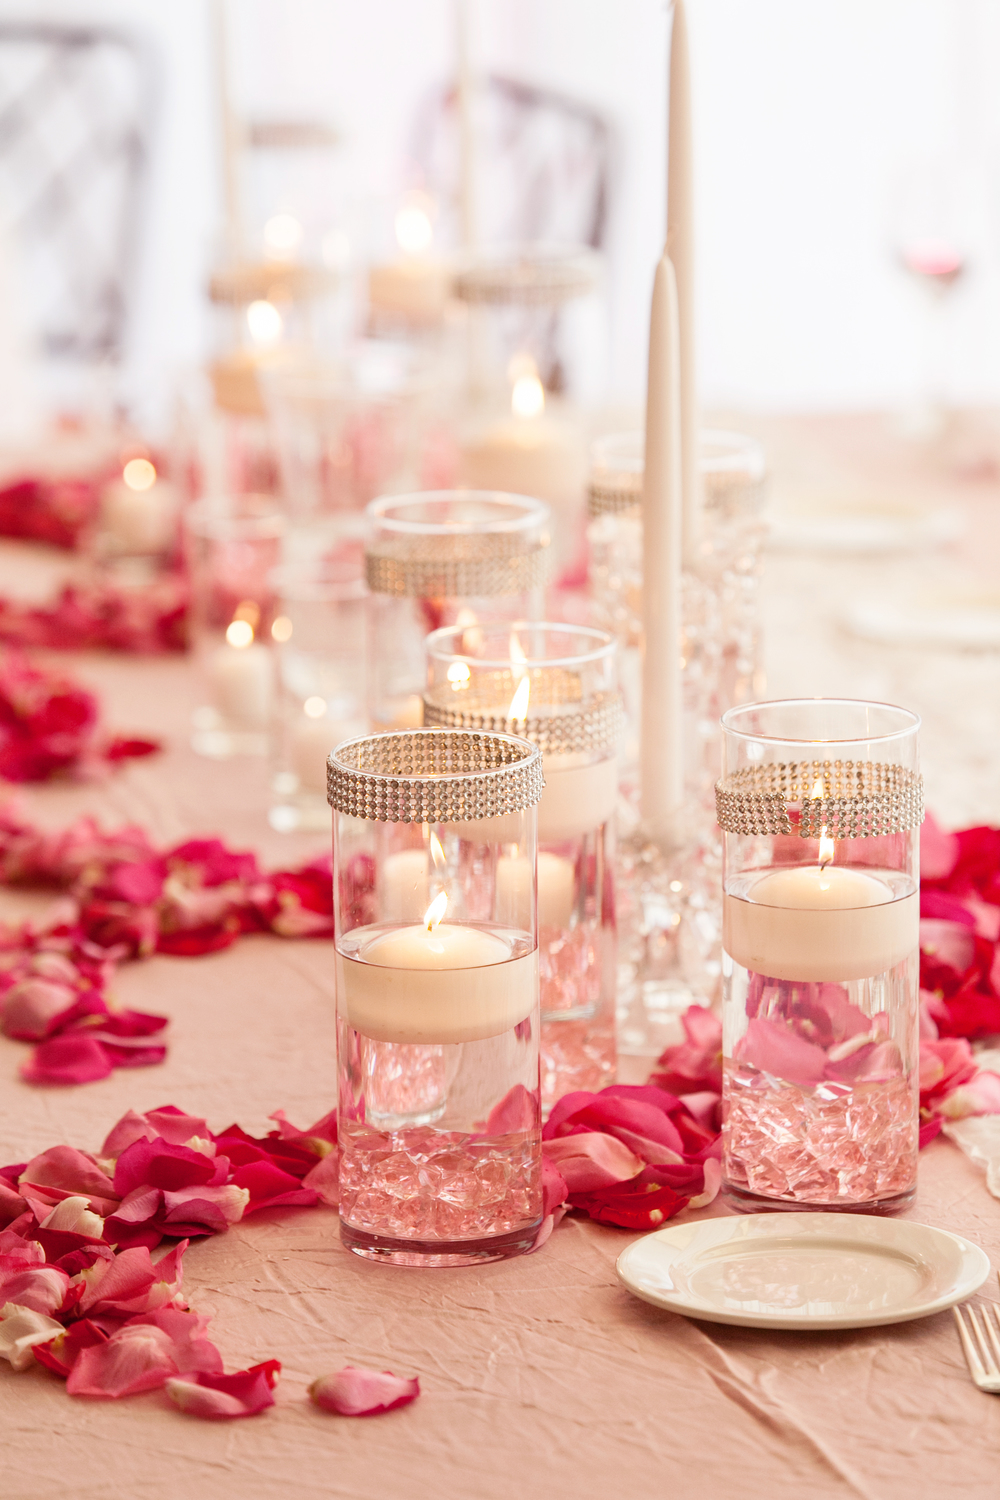 Photo by: Sherri J Photography  Event Design, Production and Custom Floral by: Flourishing Art